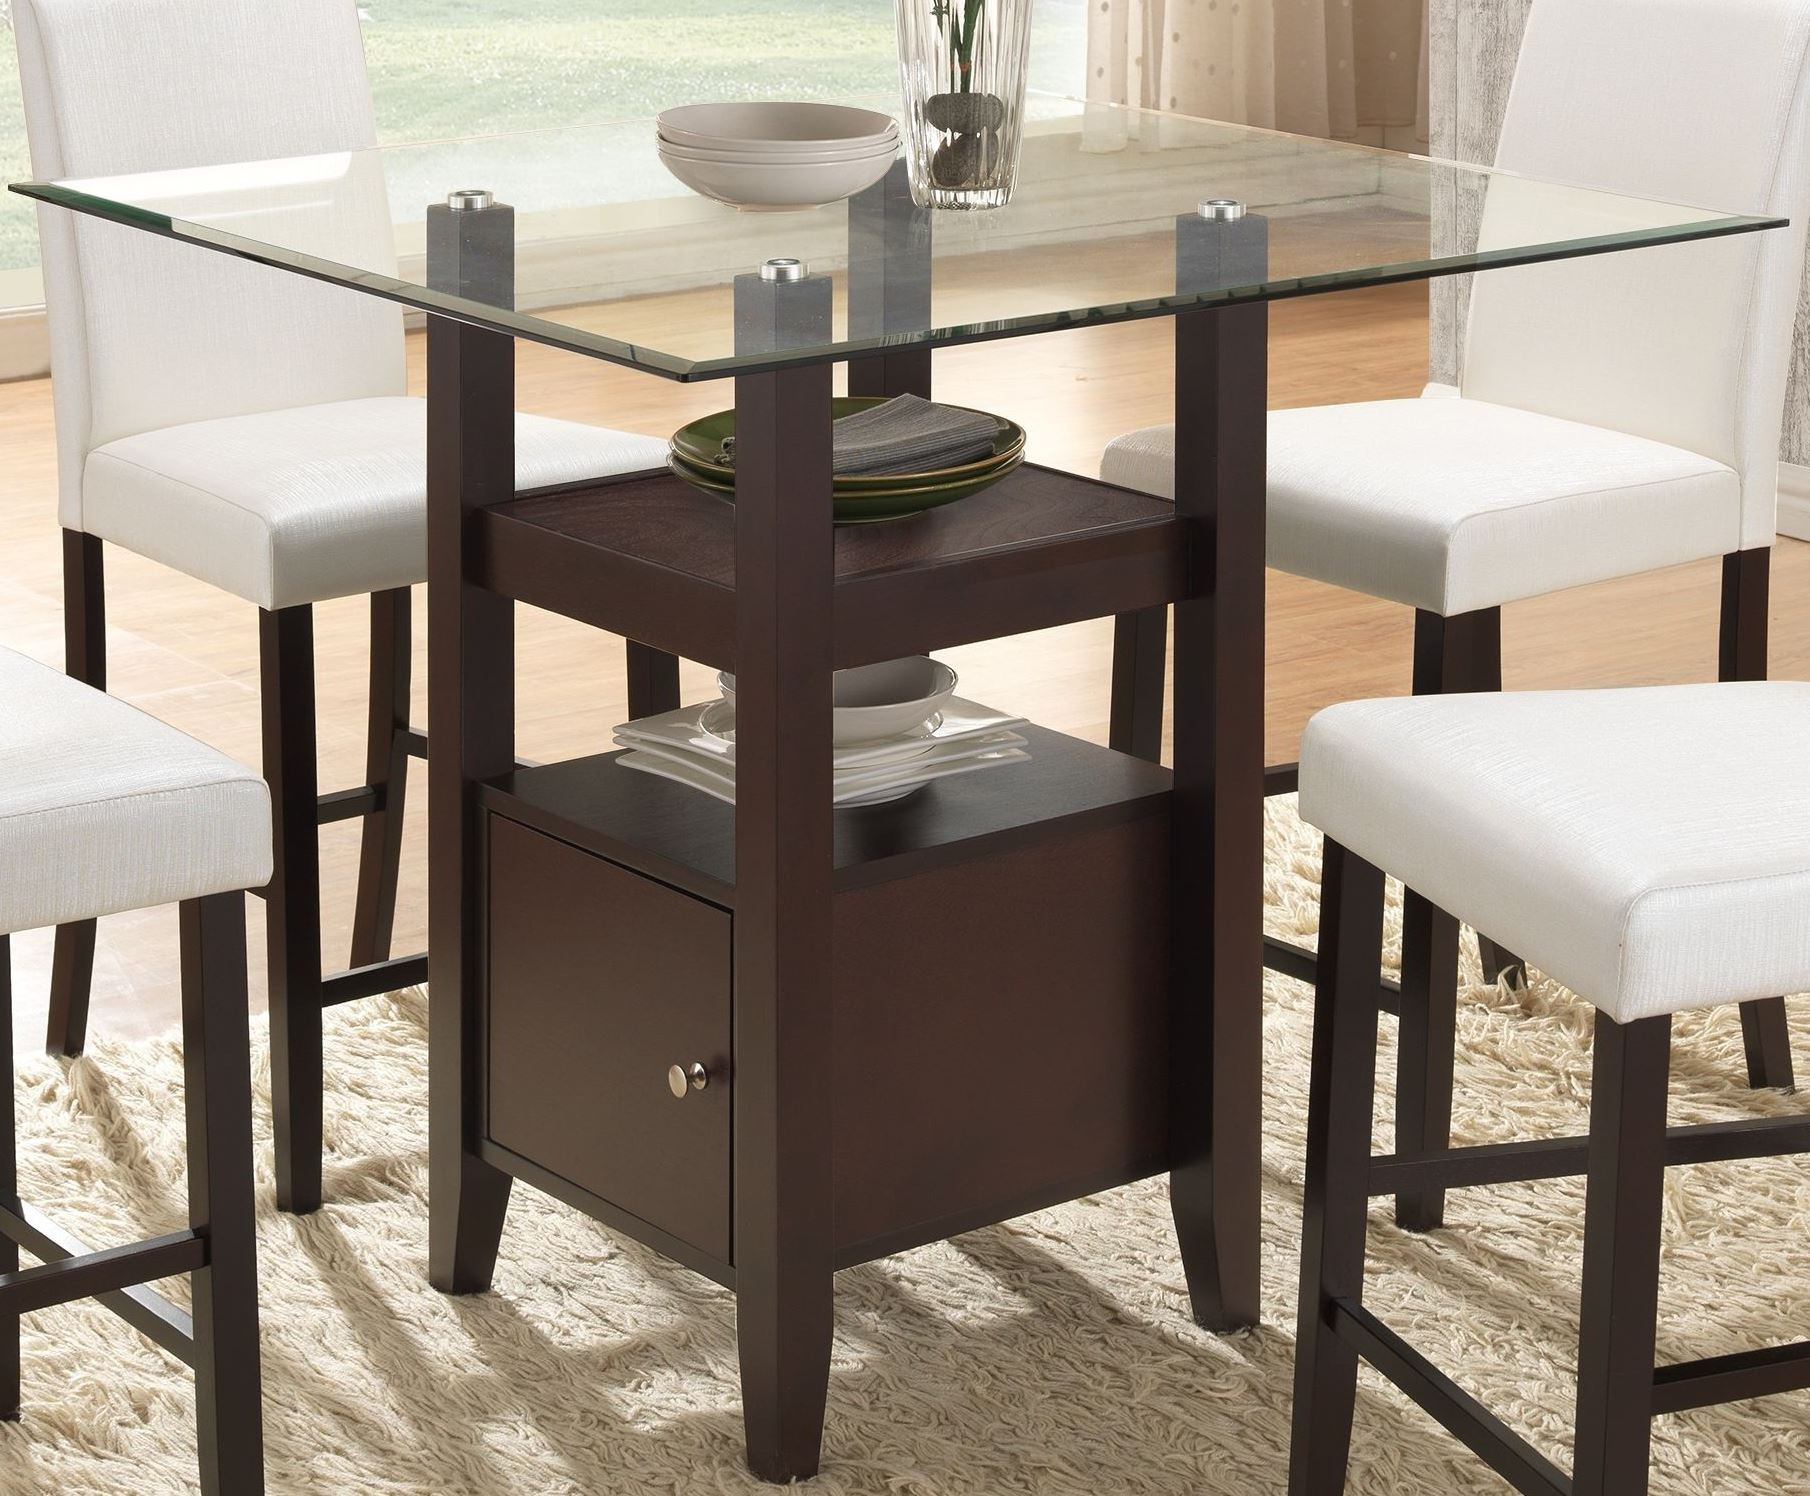 Best ideas about Dining Table Height . Save or Pin Natasha Cappuccino Glass Counter Height Dining Table Now.